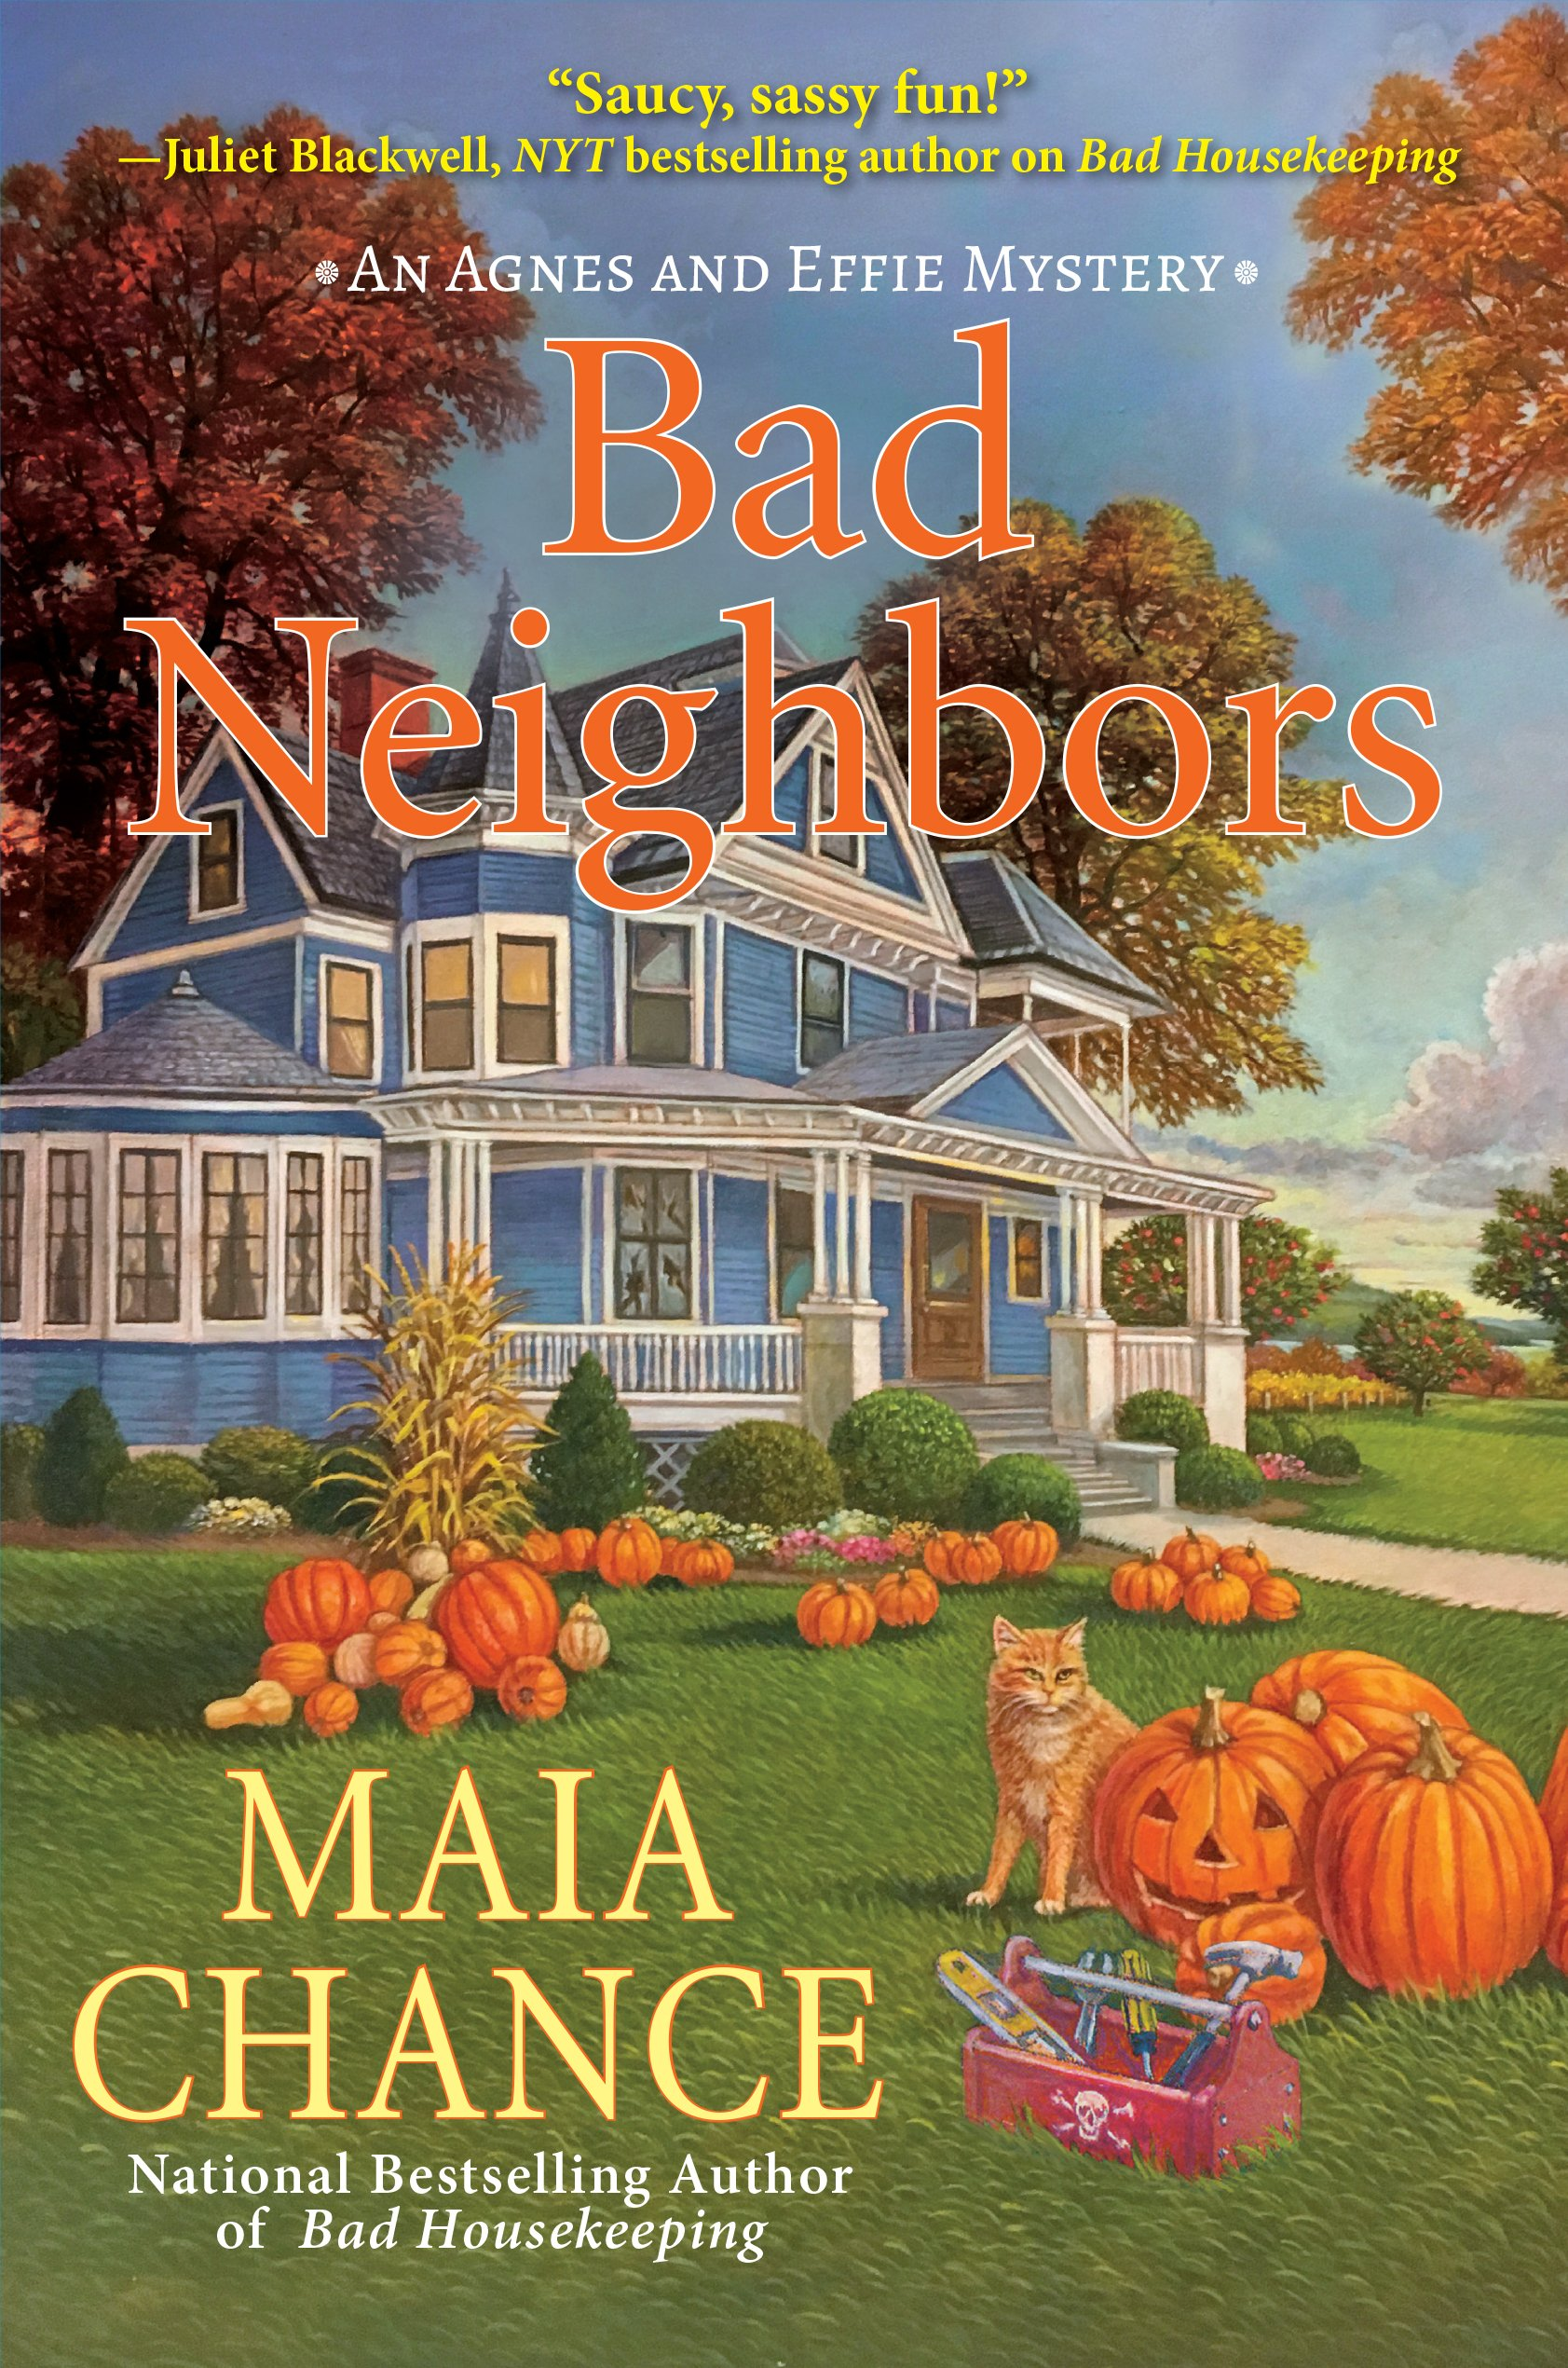 Bad Neighbors: An Agnes and Effie Mystery